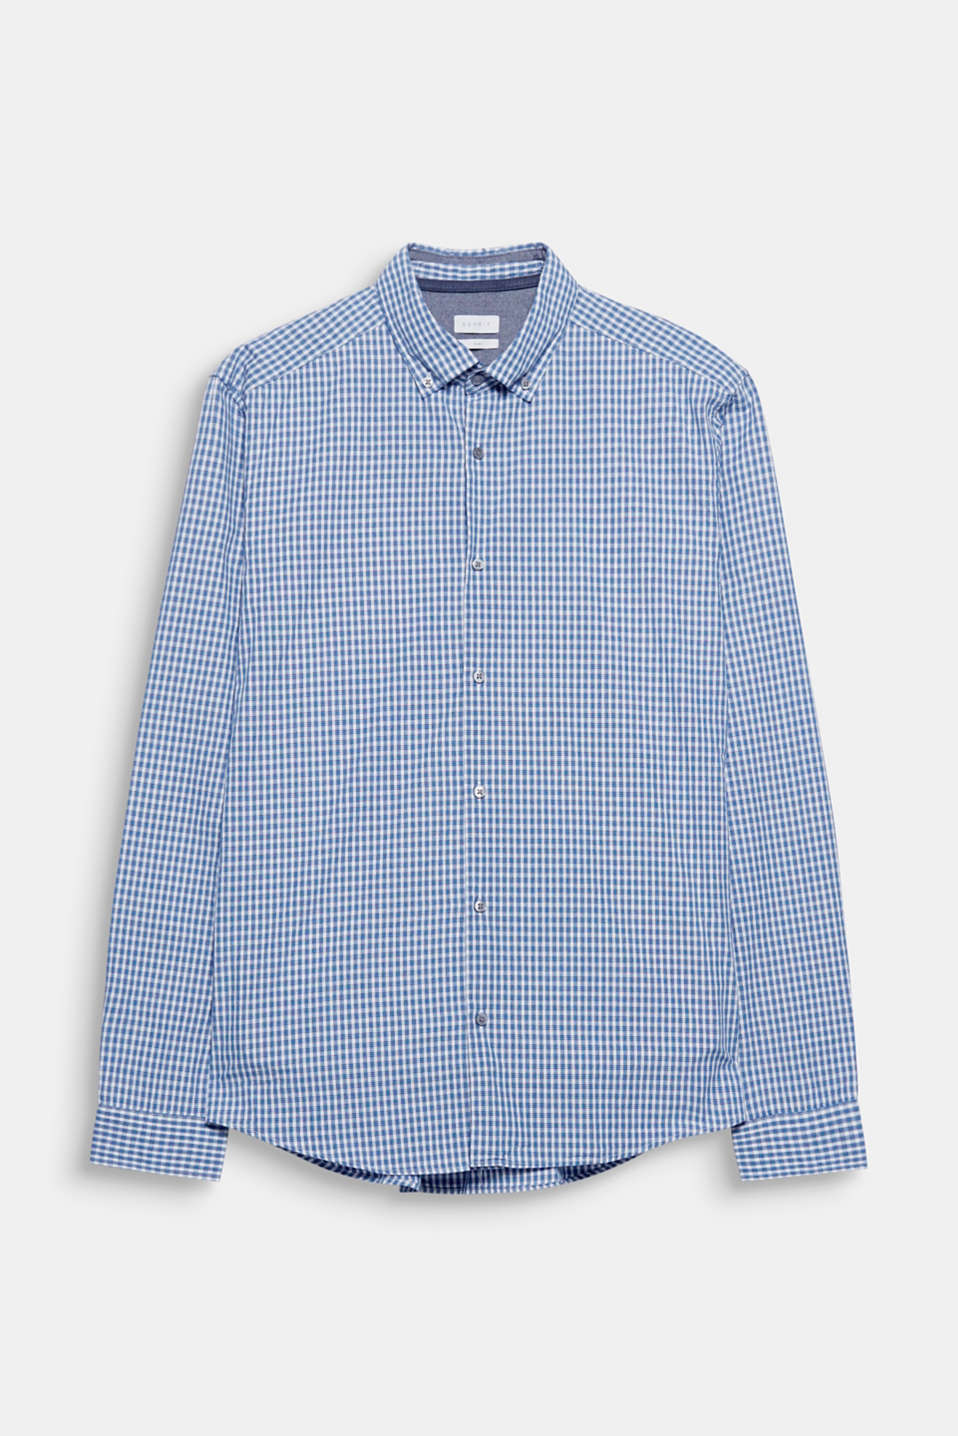 The tartan pattern gives this shirt a casual look. Perfect for urban street looks.